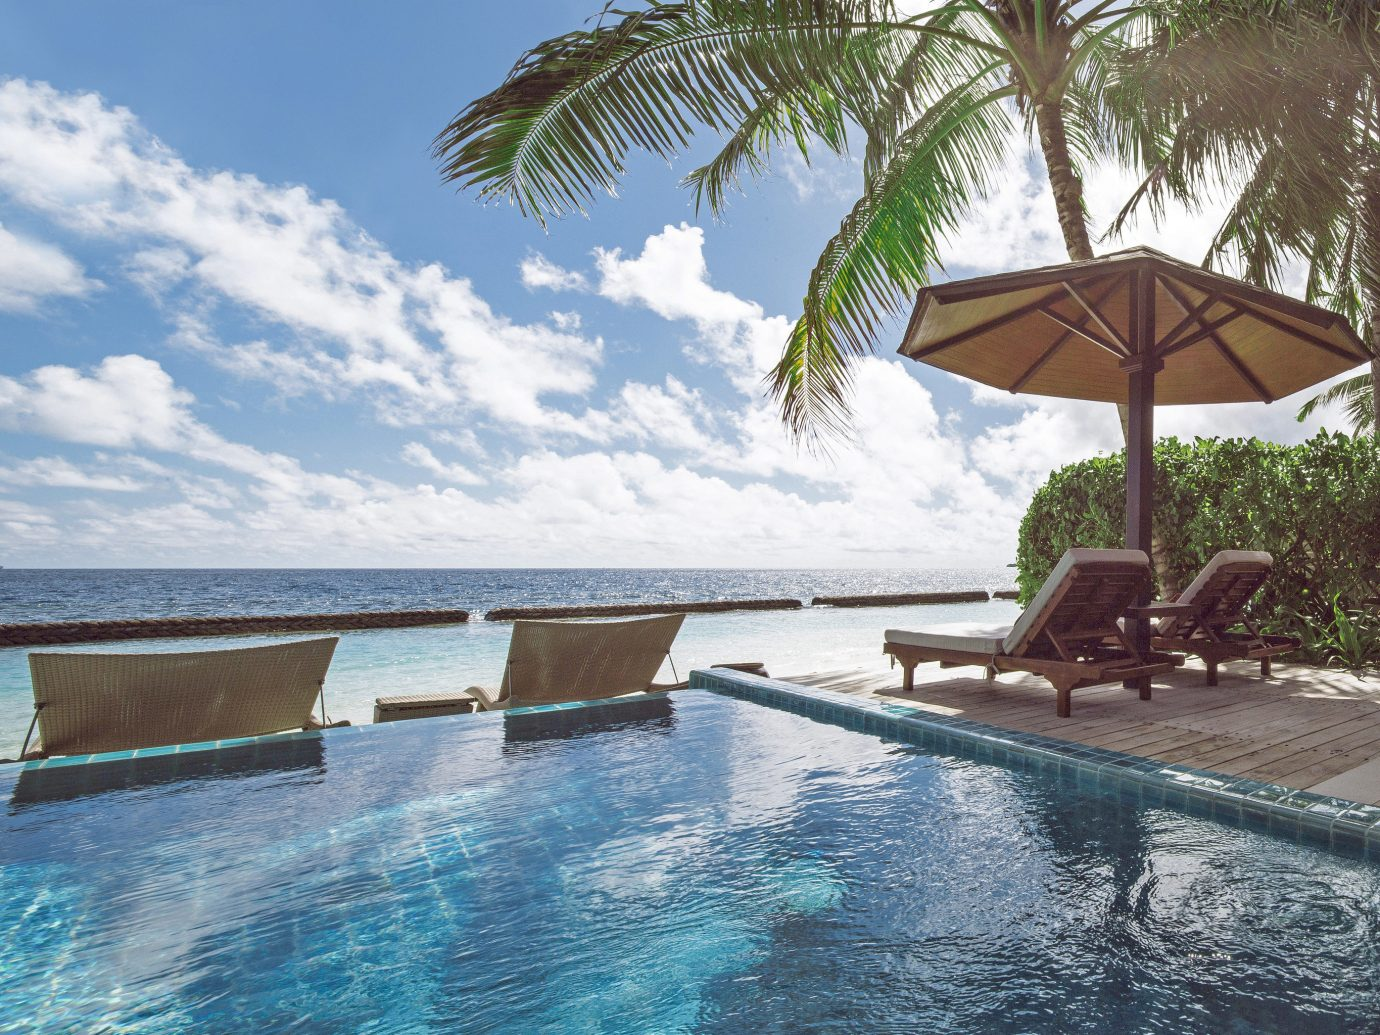 All-Inclusive Resorts Hotels outdoor tree water swimming pool Resort property Sea vacation leisure tropics palm tree sky arecales estate real estate caribbean sunlounger Villa Ocean resort town Pool outdoor furniture house tourism Lagoon condominium swimming sunny day